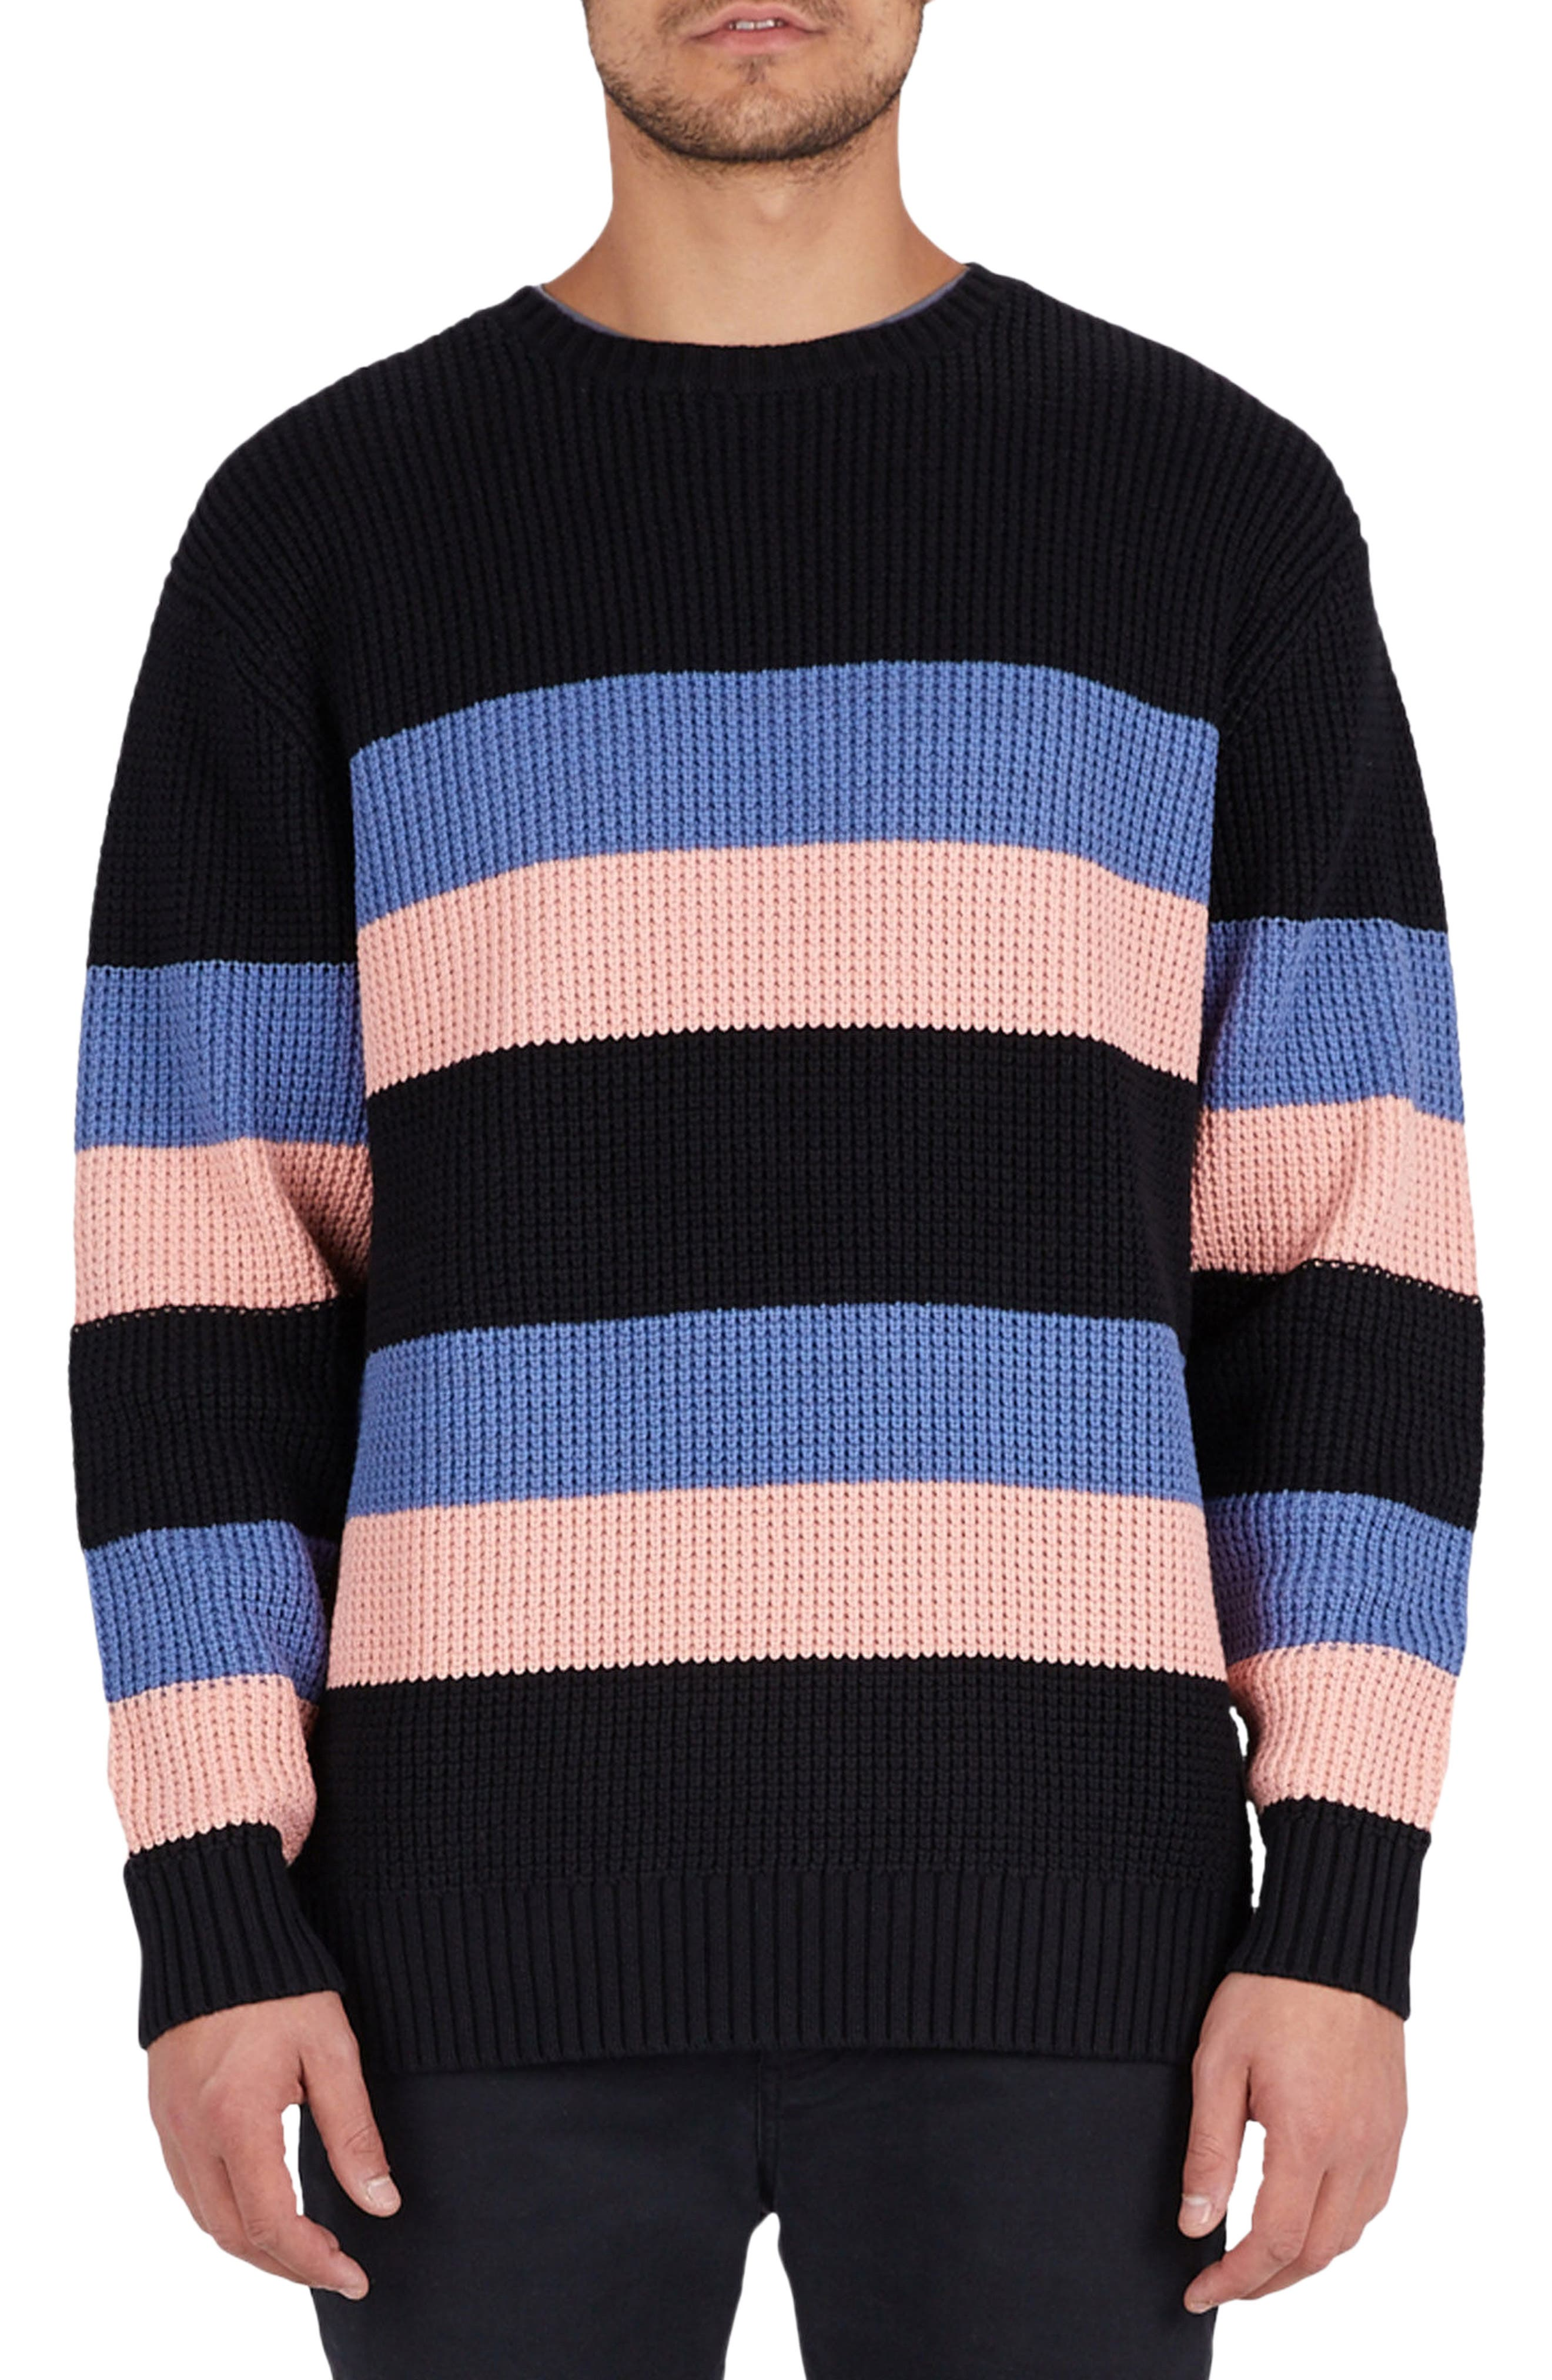 Rugby Stripe Sweater,                             Main thumbnail 1, color,                             Black/ Pink